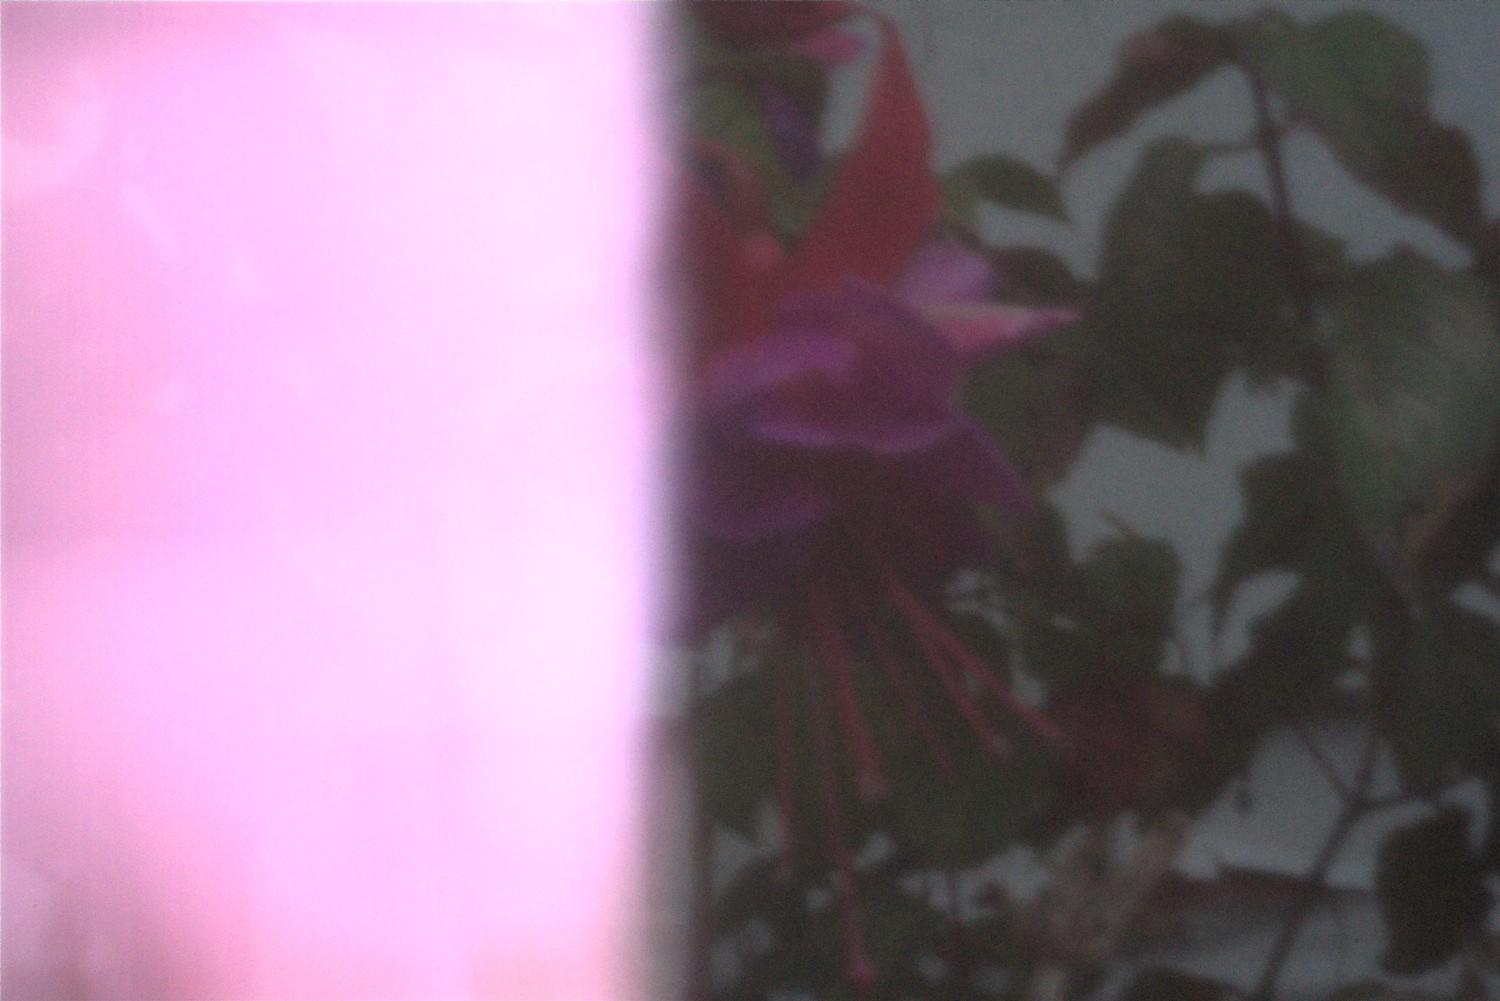 Fuchsia with light leak